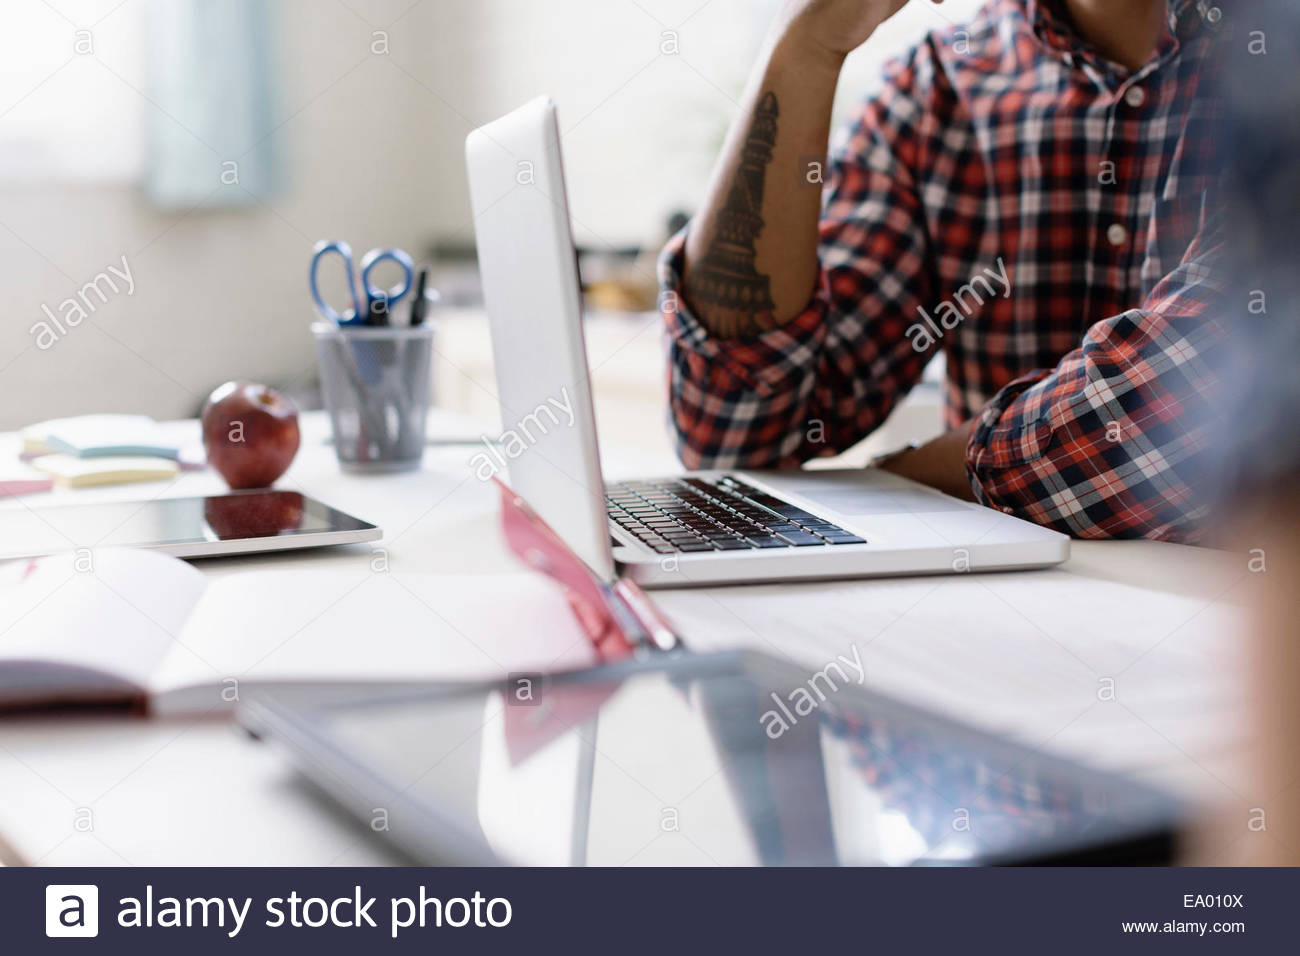 Small Business, Start-up - Stock Image